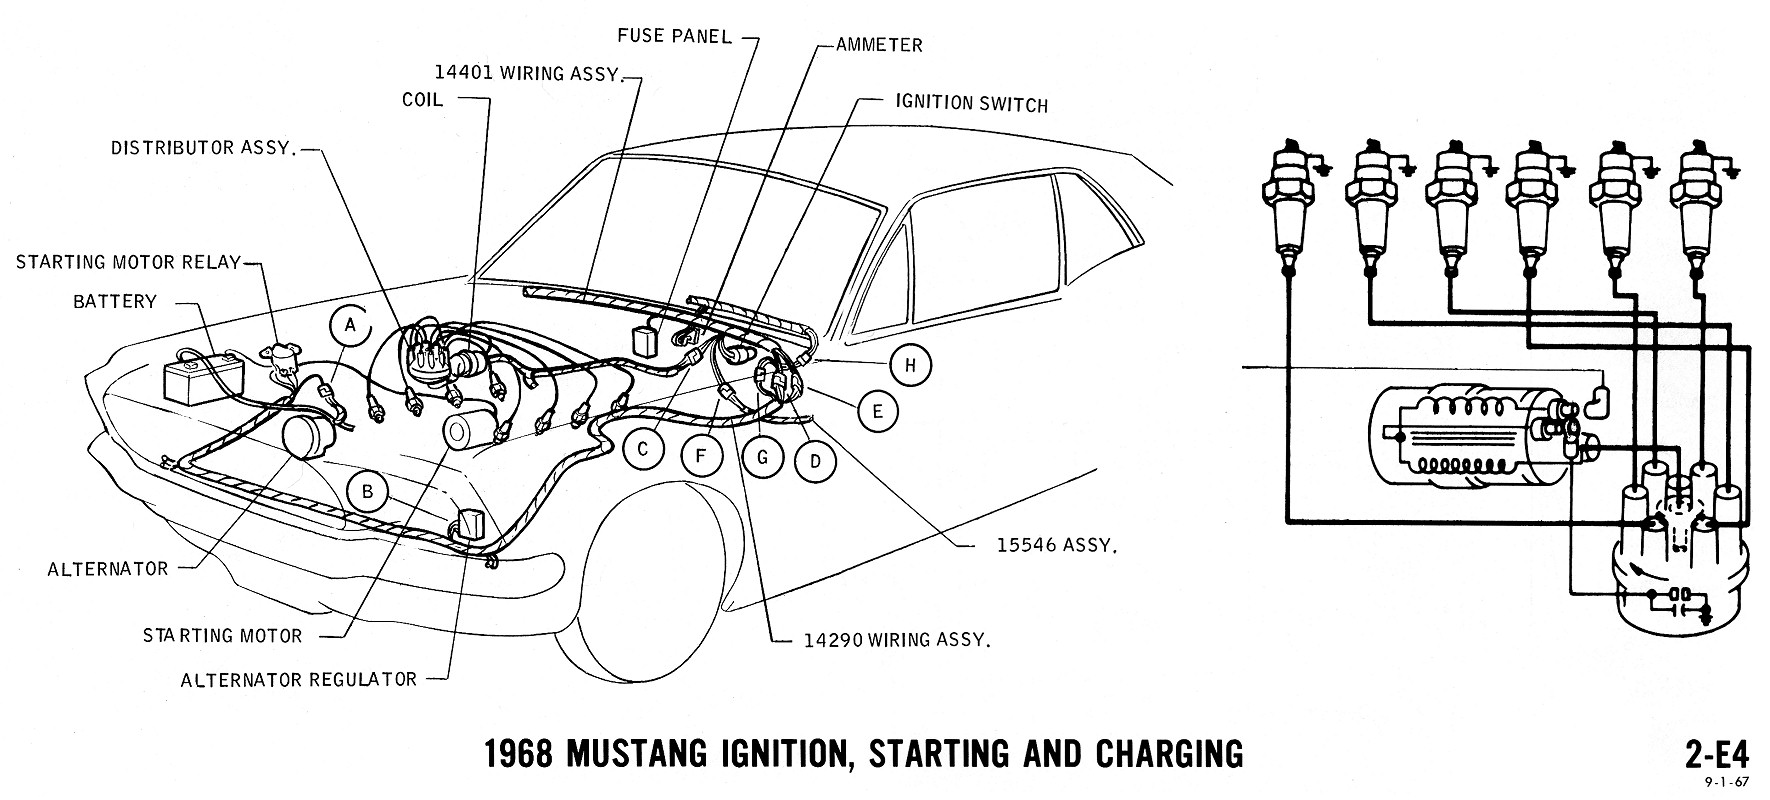 1968 mustang wiring diagrams and vacuum schematics average joe 1967 gto wiring  schematic 1968 mustang wiring